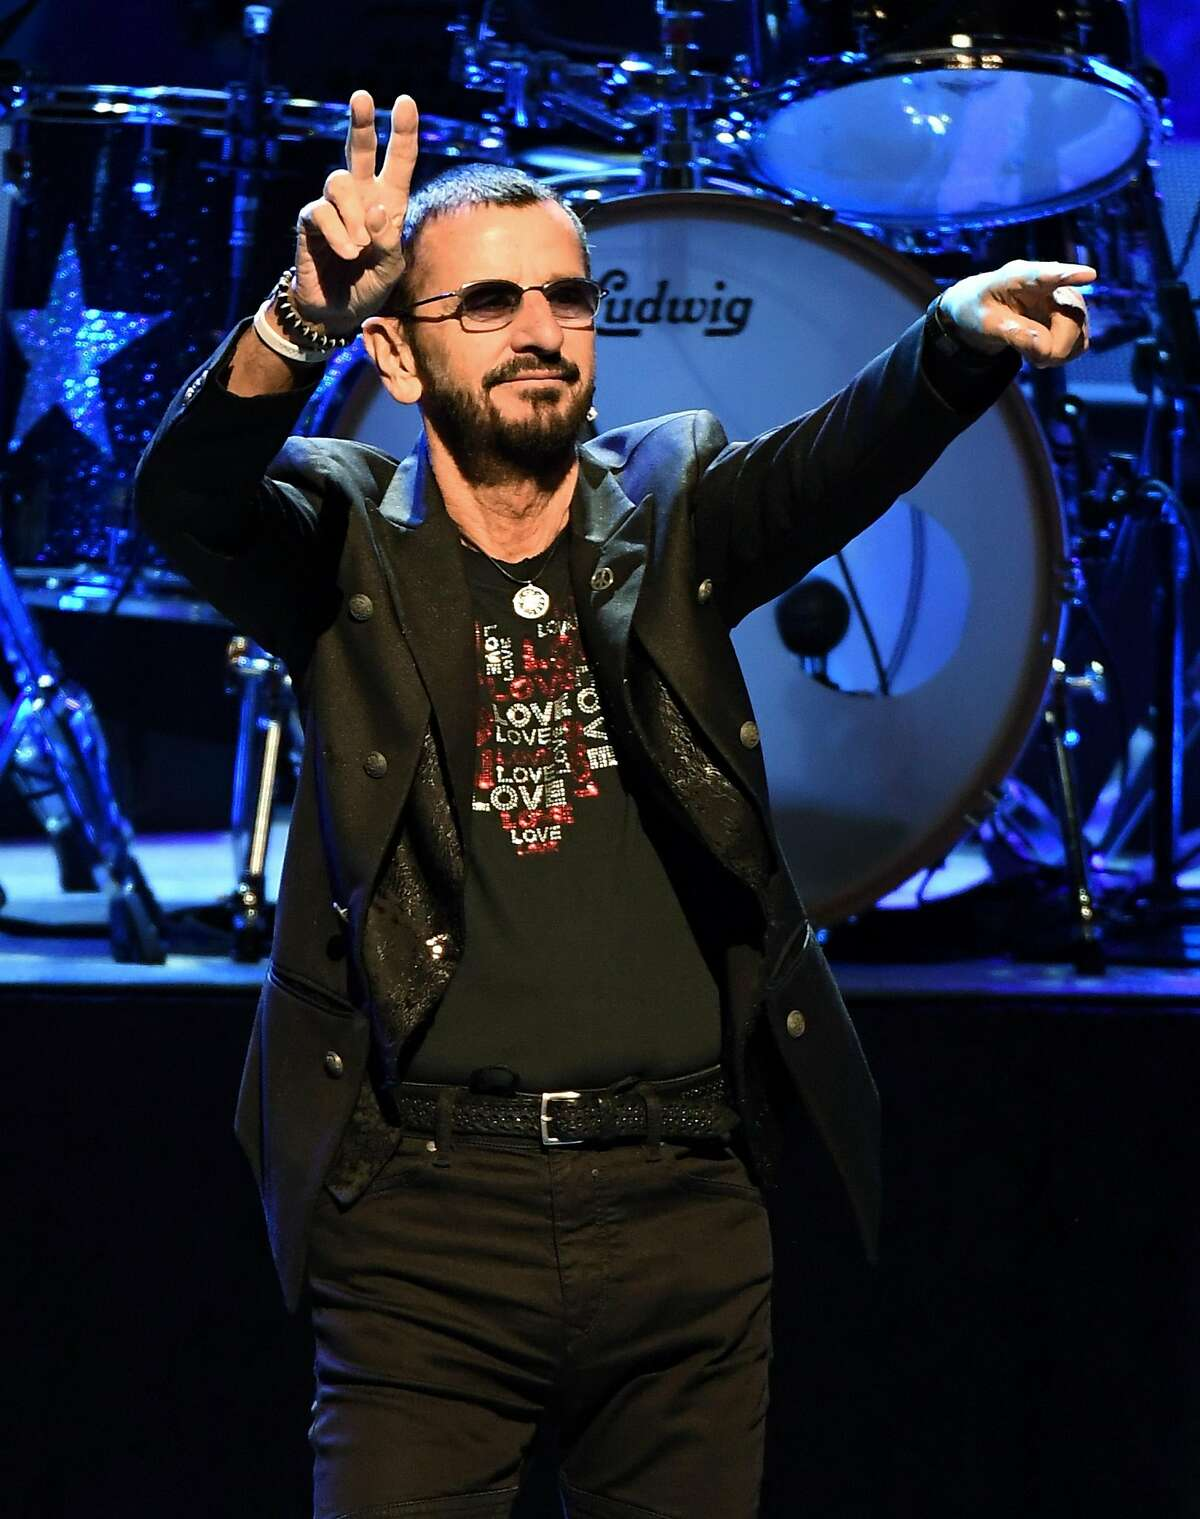 LAS VEGAS, NV - NOVEMBER 13: Recording artist Ringo Starr performs with Ringo Starr & His All-Starr Band at The Smith Center for the Performing Arts on November 13, 2016 in Las Vegas, Nevada. (Photo by Ethan Miller/Getty Images)